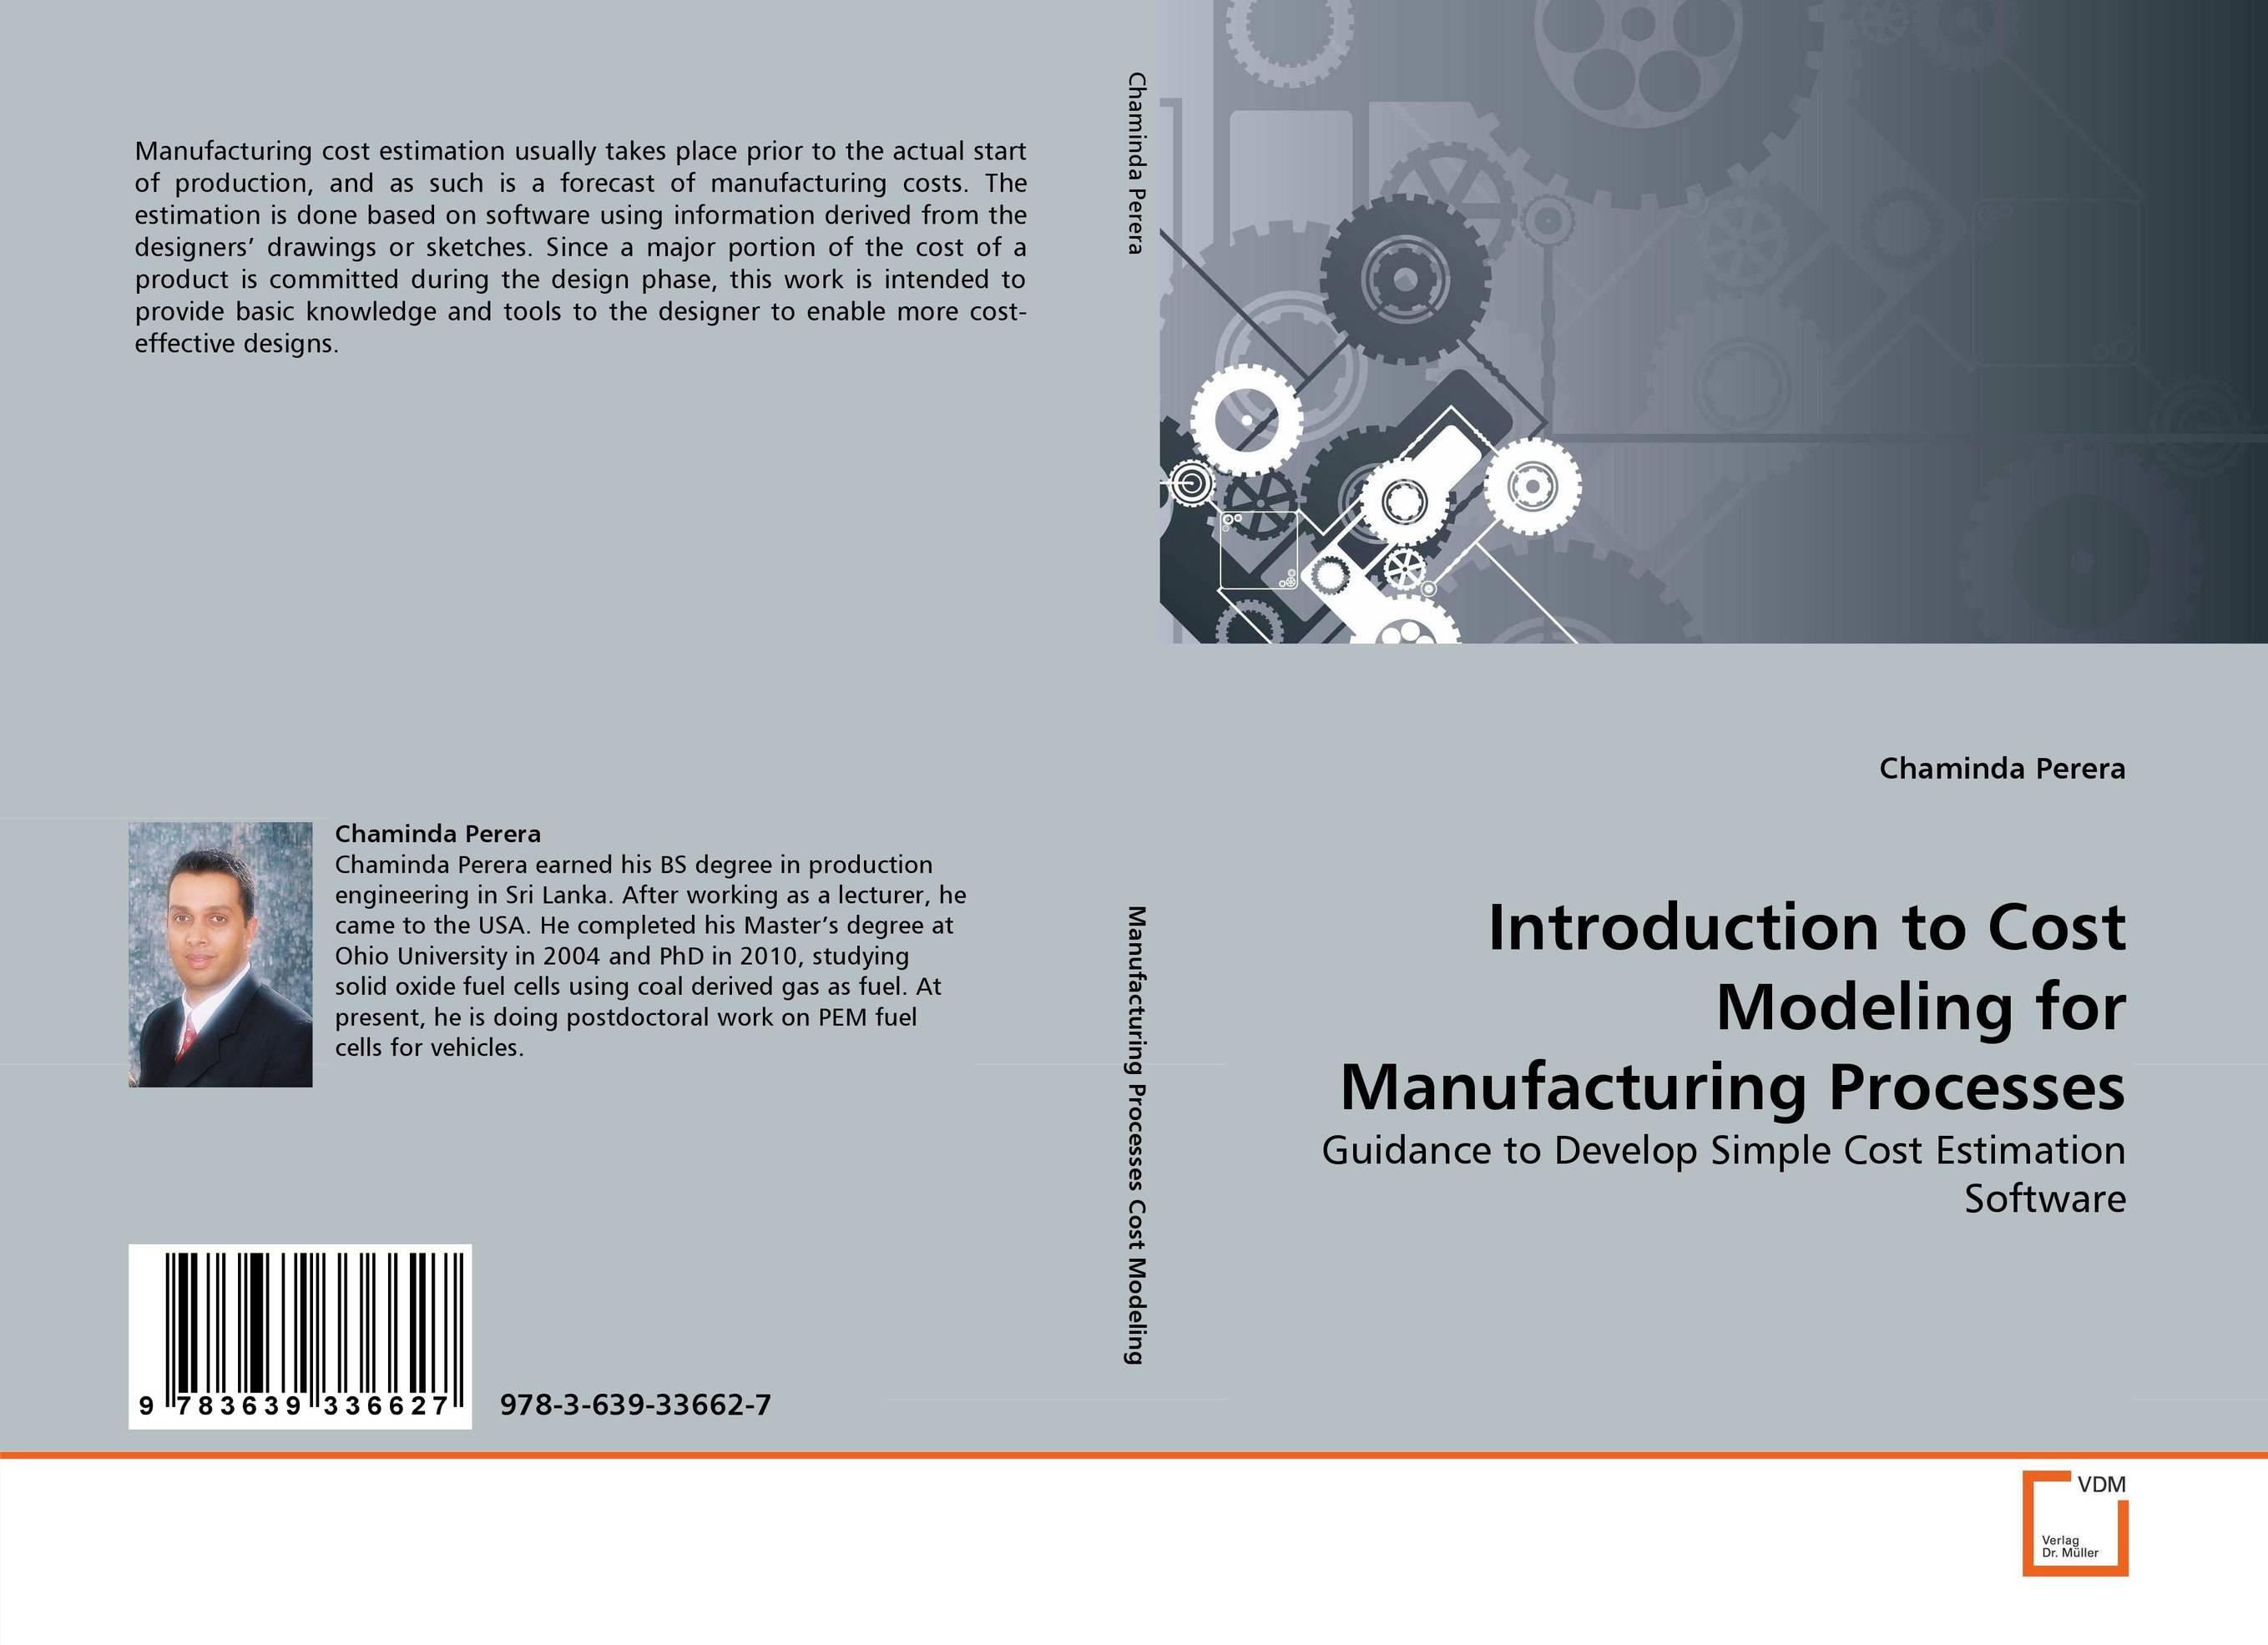 Introduction to Cost Modeling for Manufacturing Processes a novel software cost estimation techniques using fuzzy methods